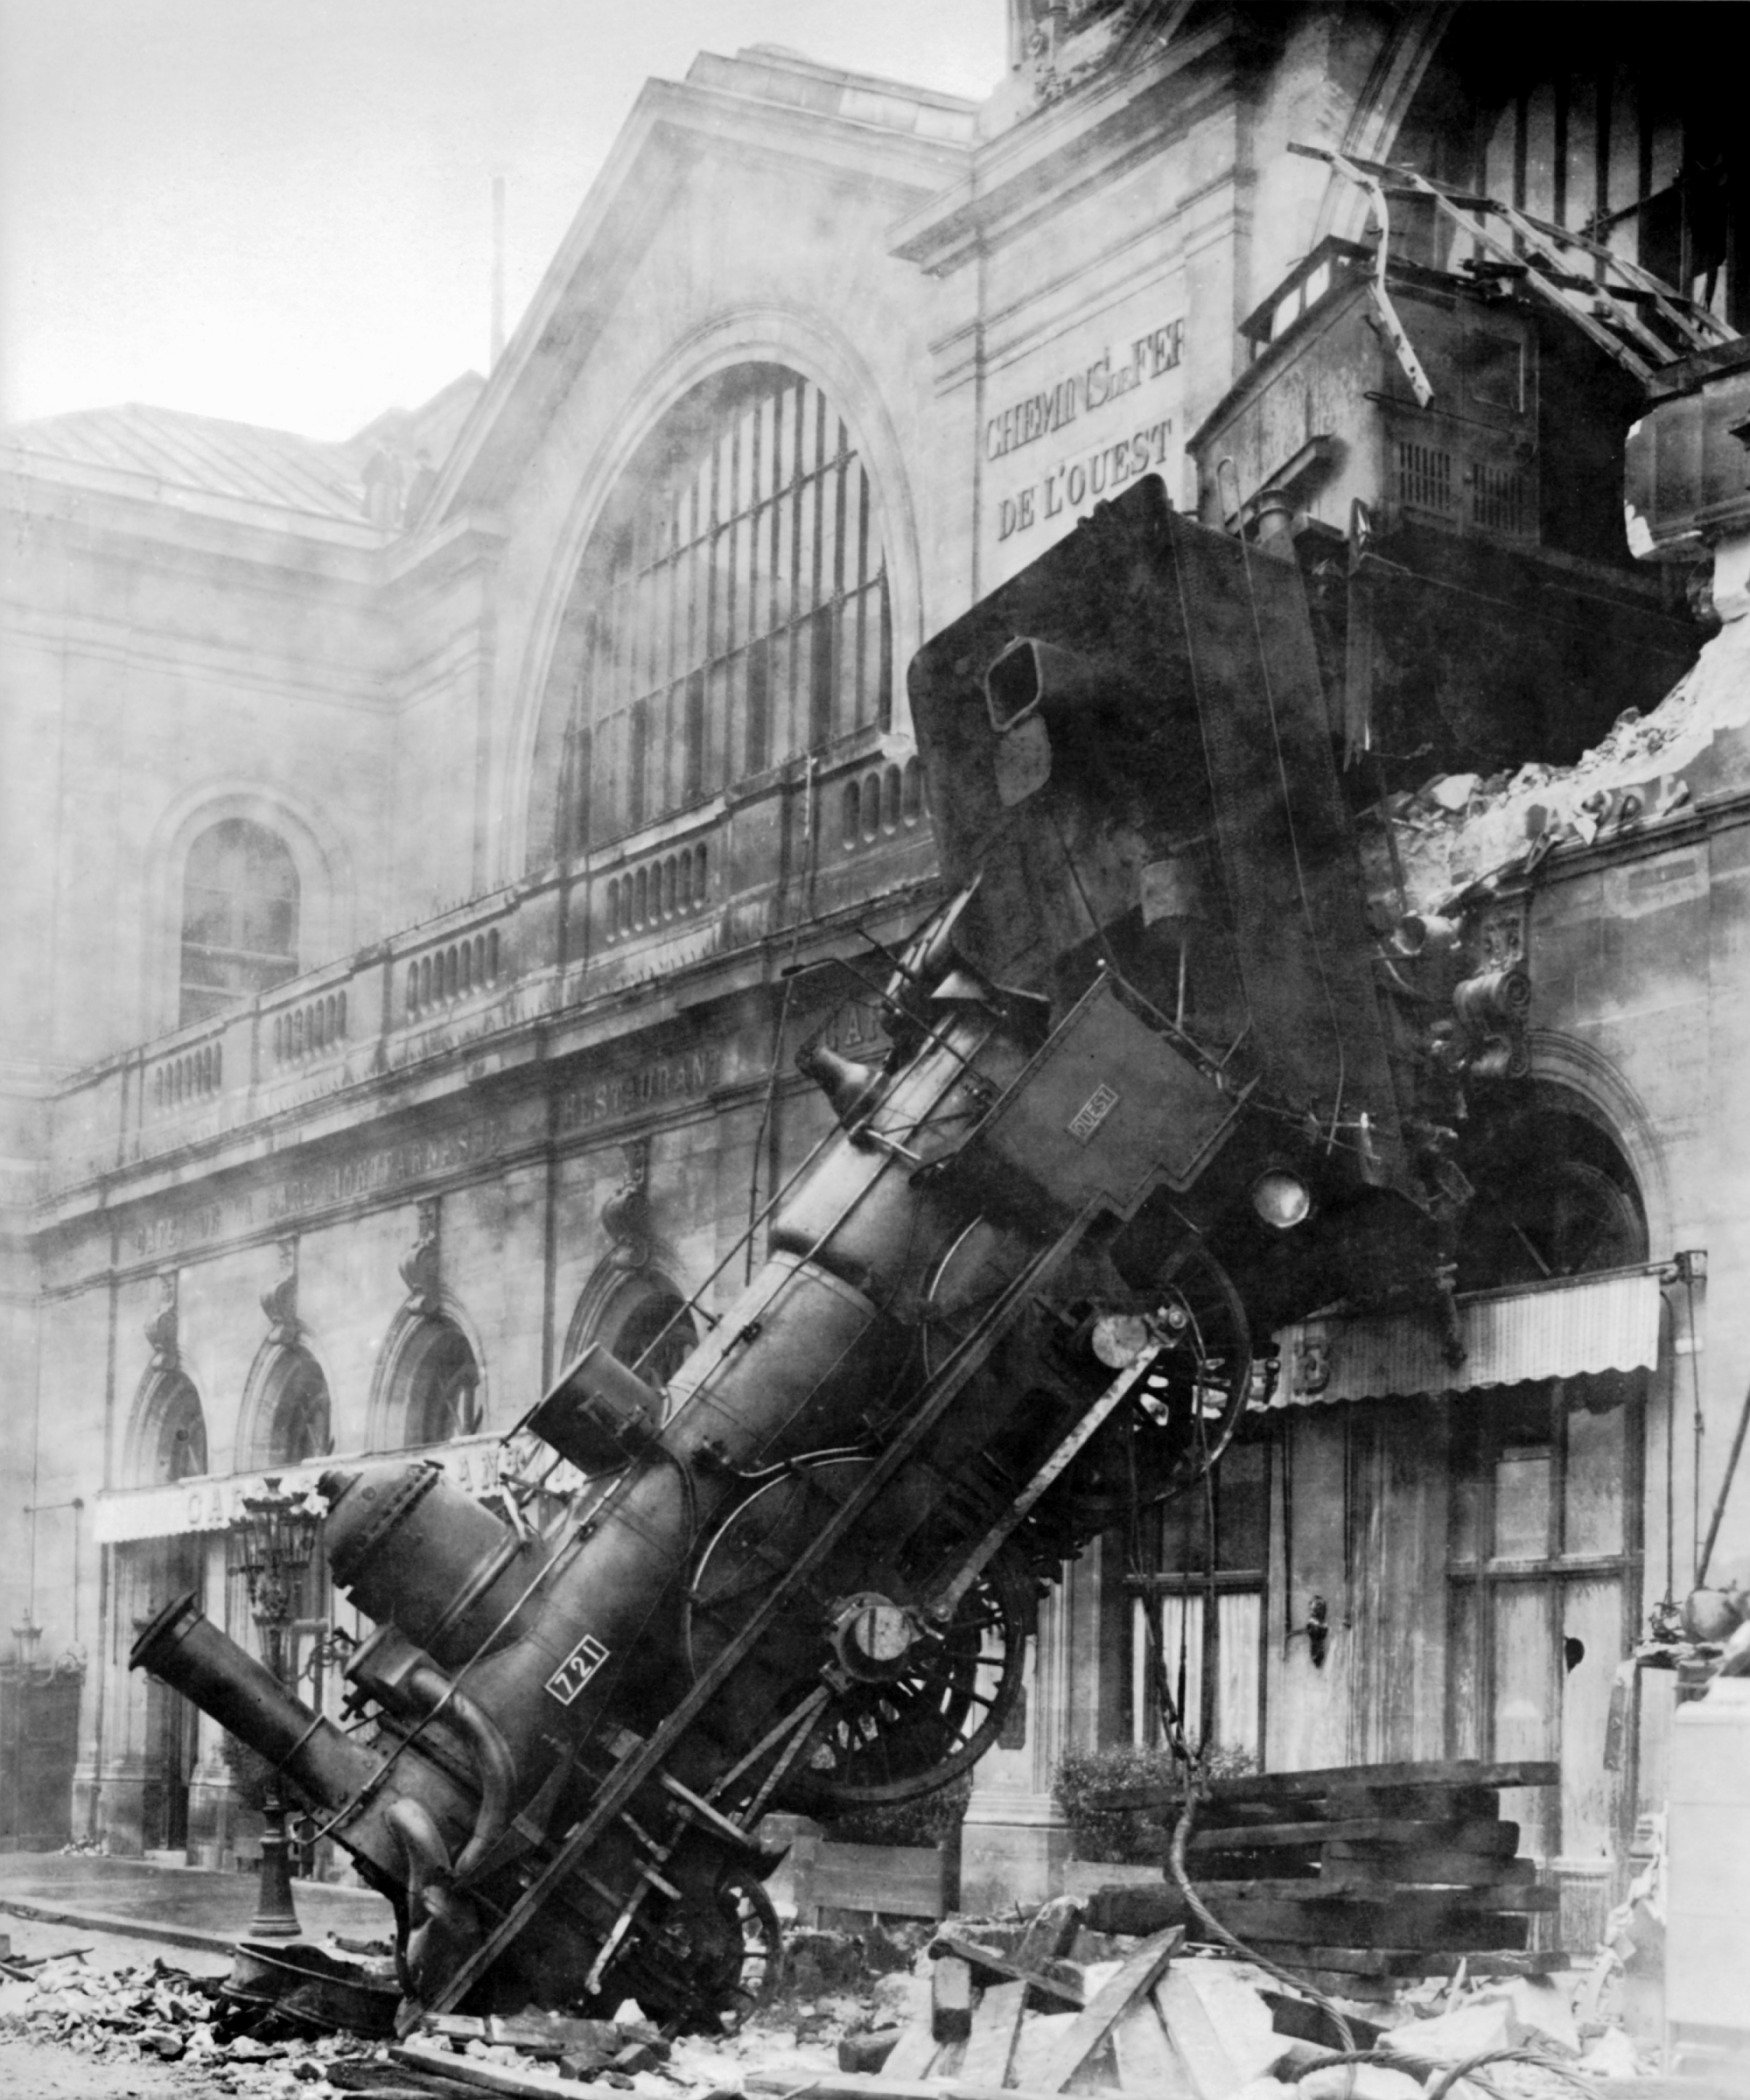 http://de.academic.ru/pictures/dewiki/84/Train_wreck_at_Montparnasse_1895.jpg